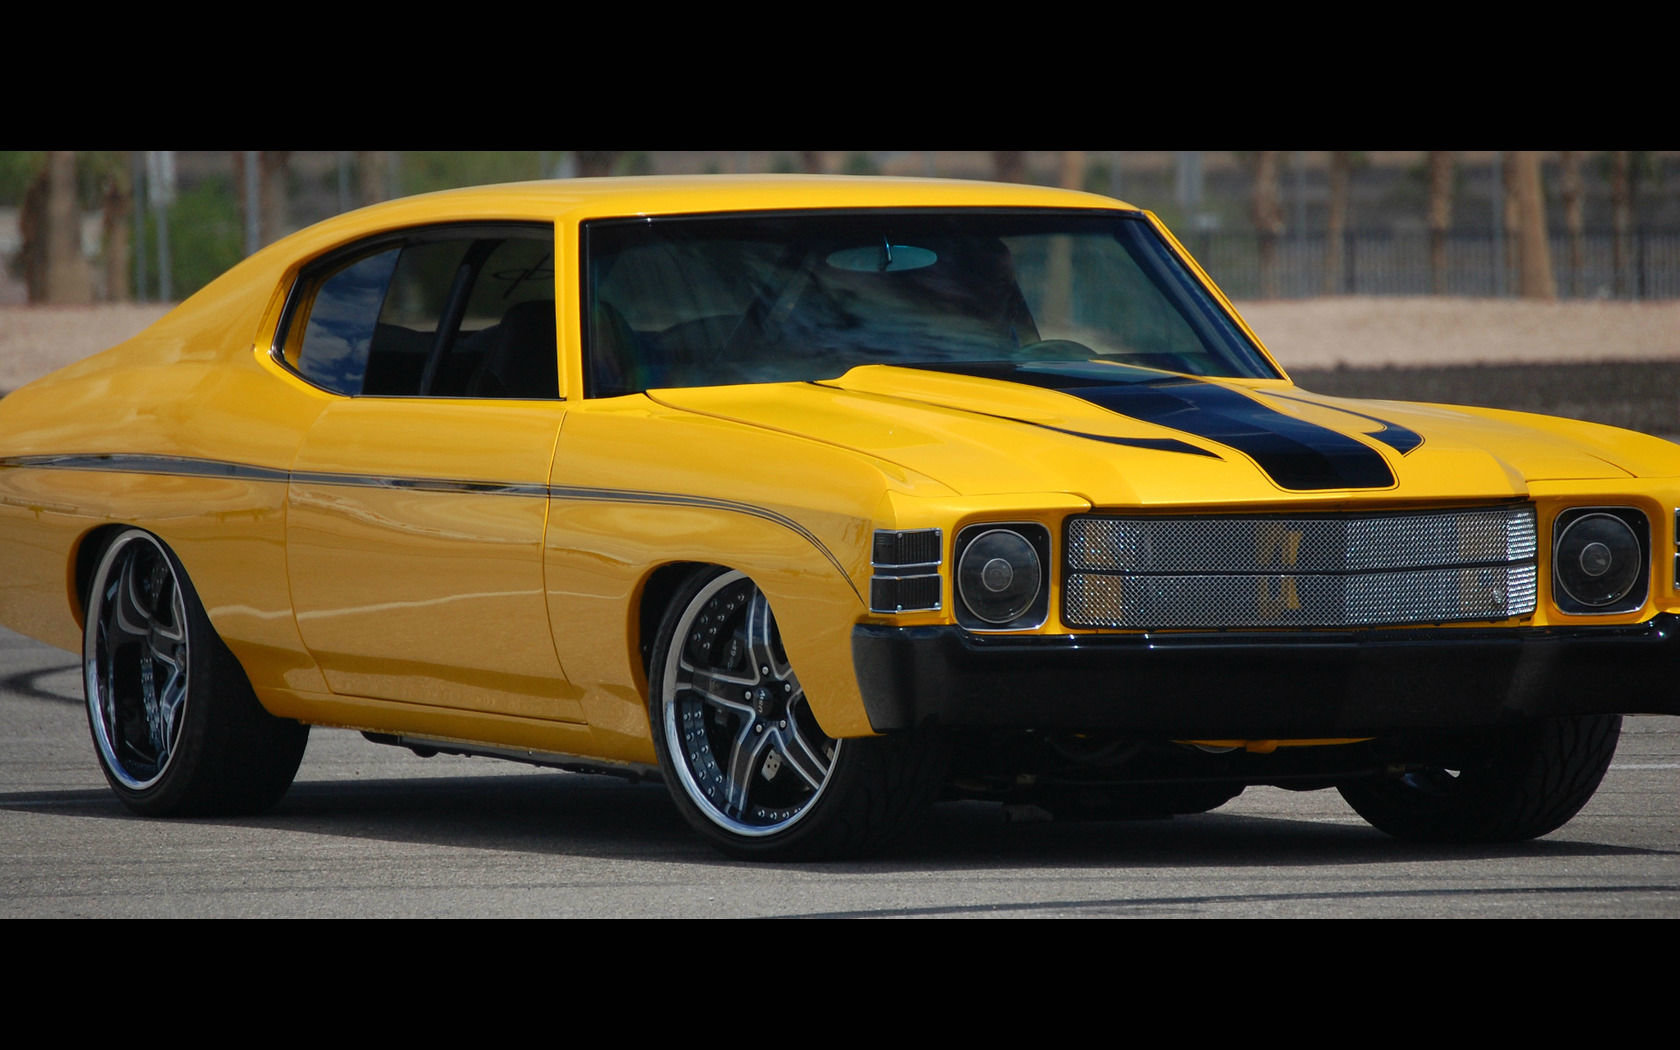 High Resolution Muscle Car Hd 1680x1050 Wallpaper Id 444701 For Computer